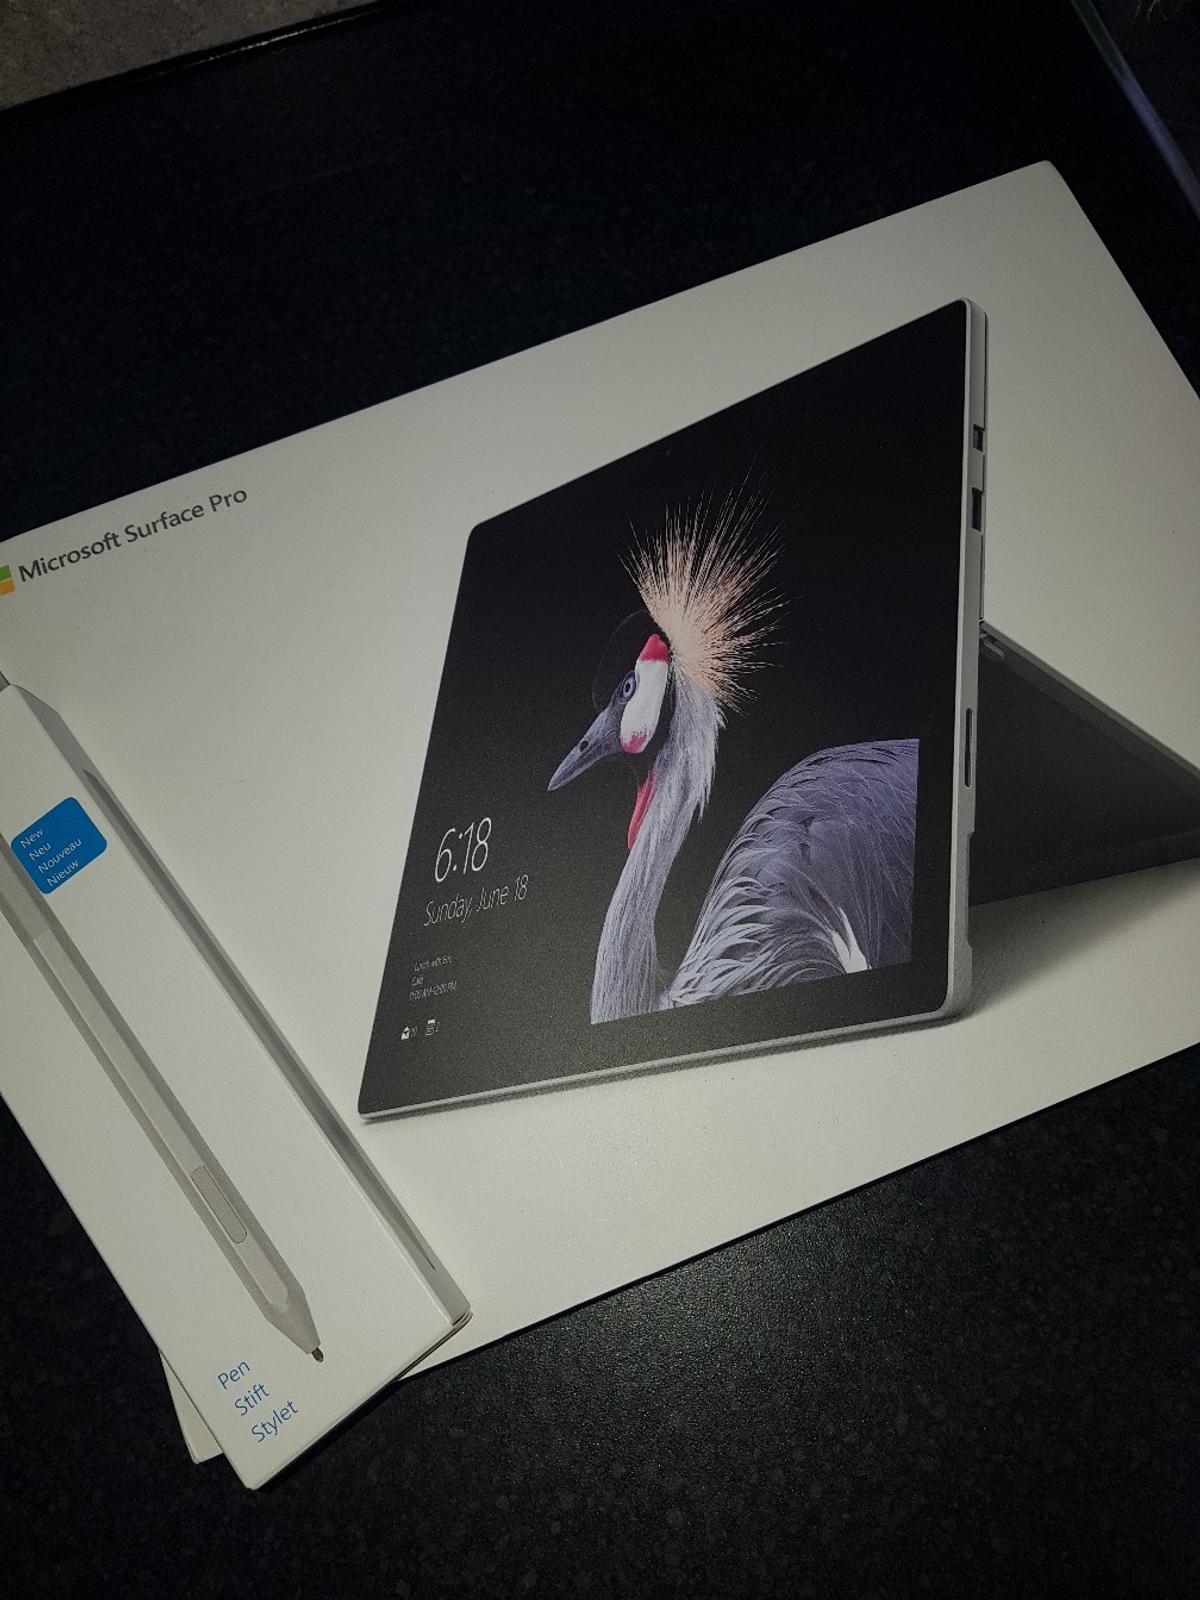 Surface pro 5 i5 8gb ram 256gb in N9 Enfield for £650 00 for